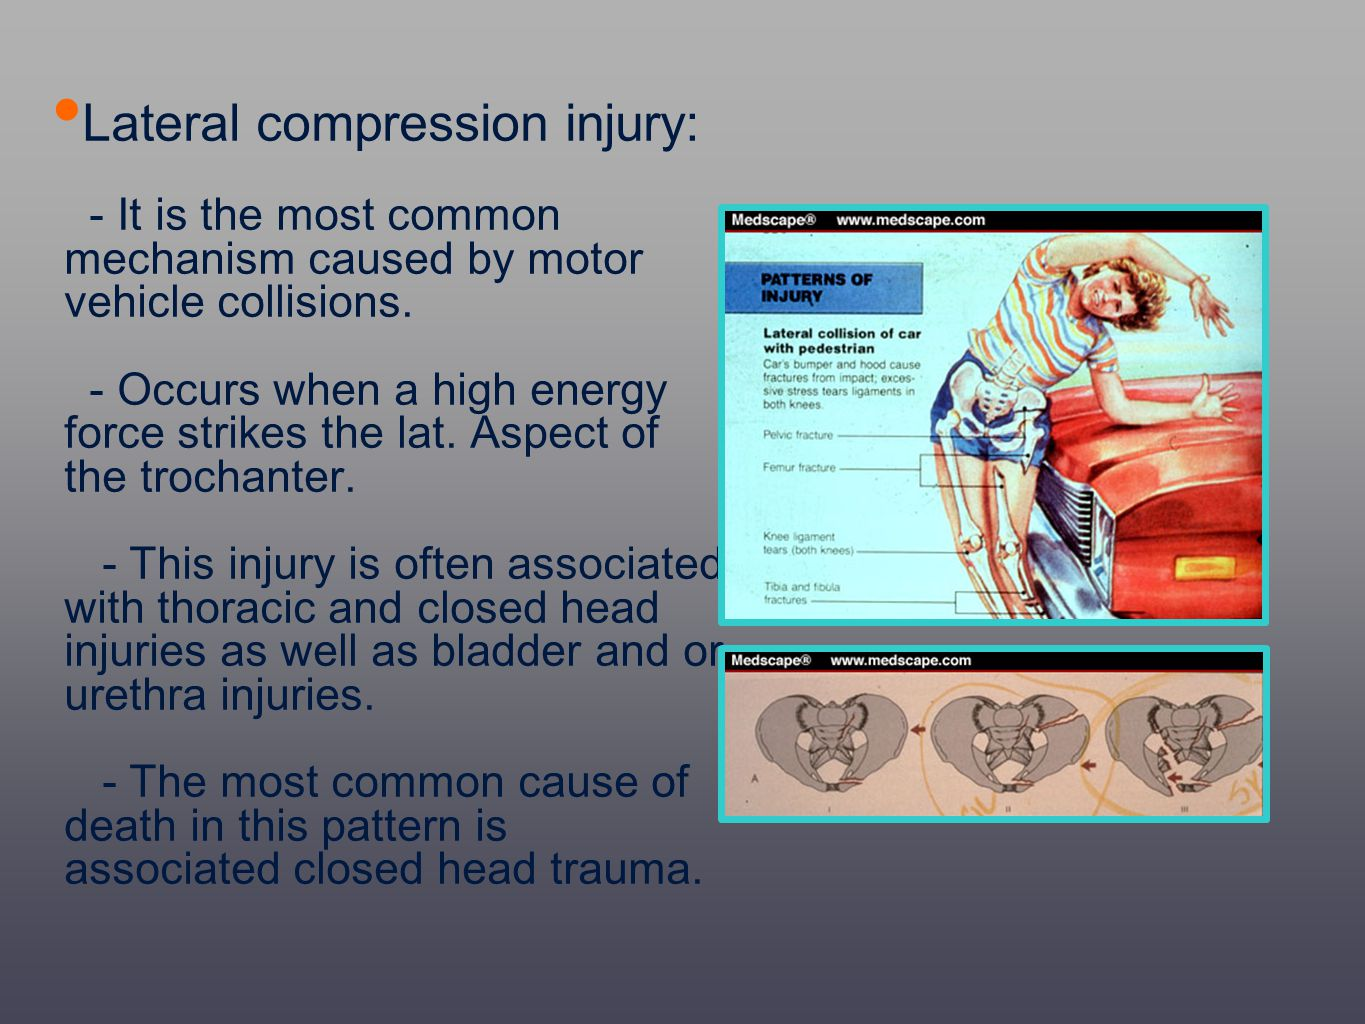 Lateral compression injury: